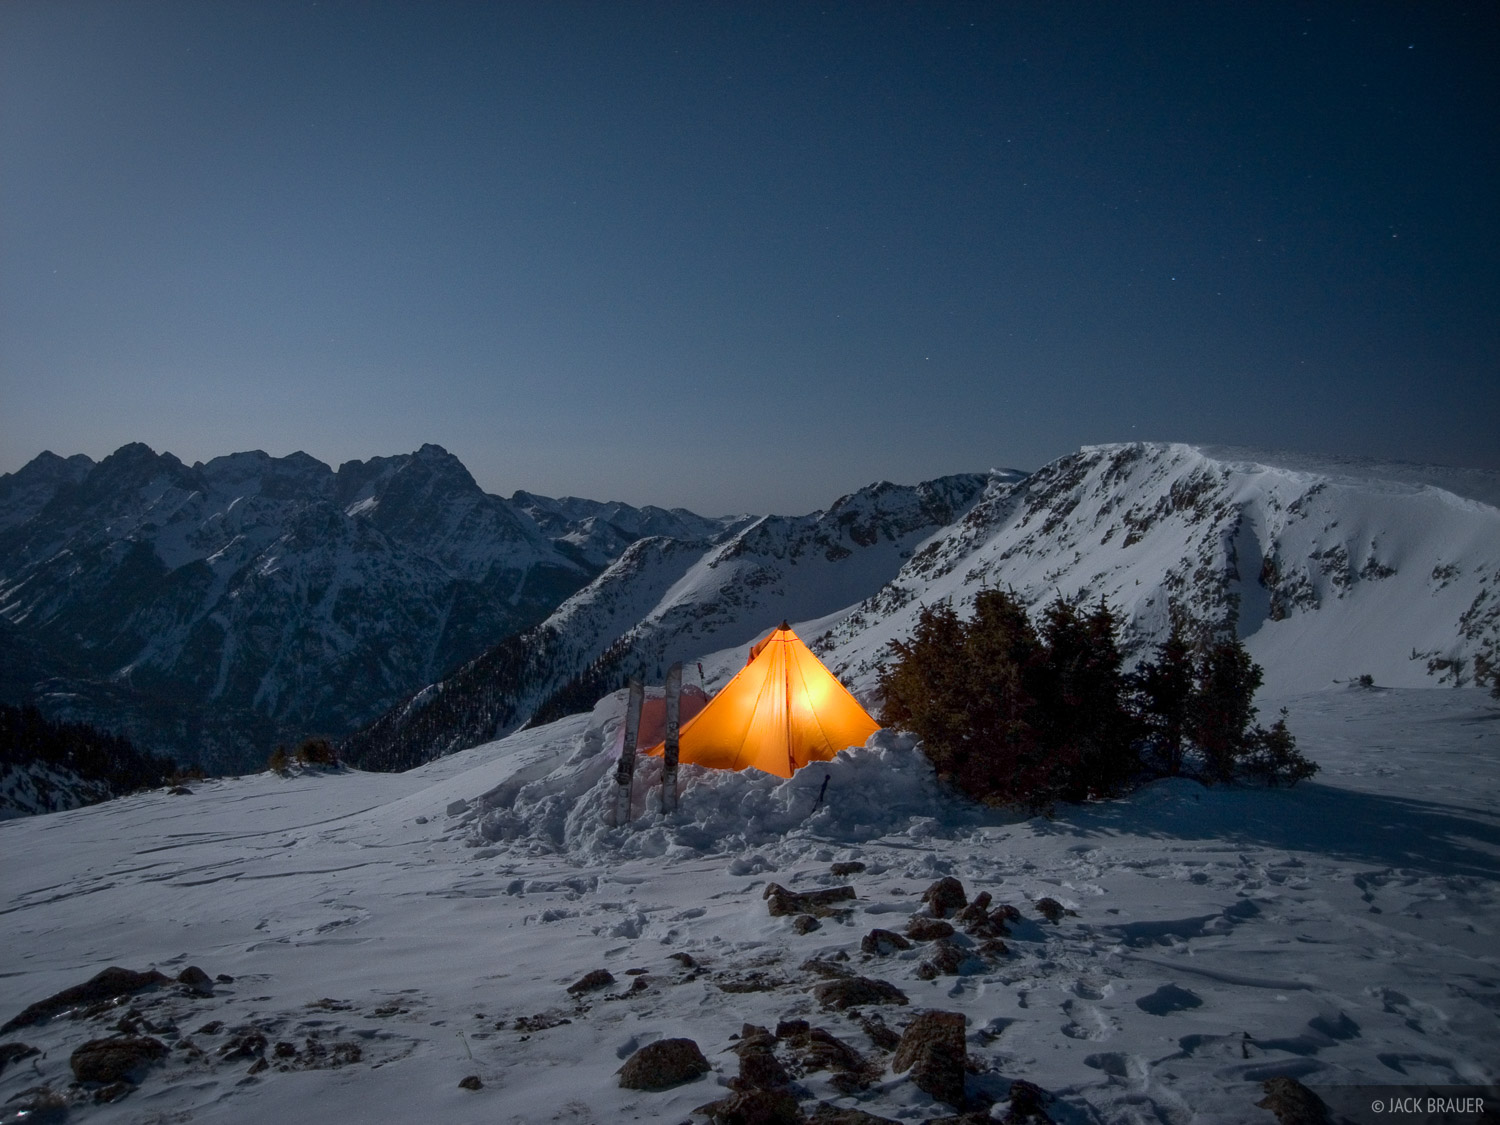 Winter Camping, Full moon, Illuminated Tent, Colorado, photo